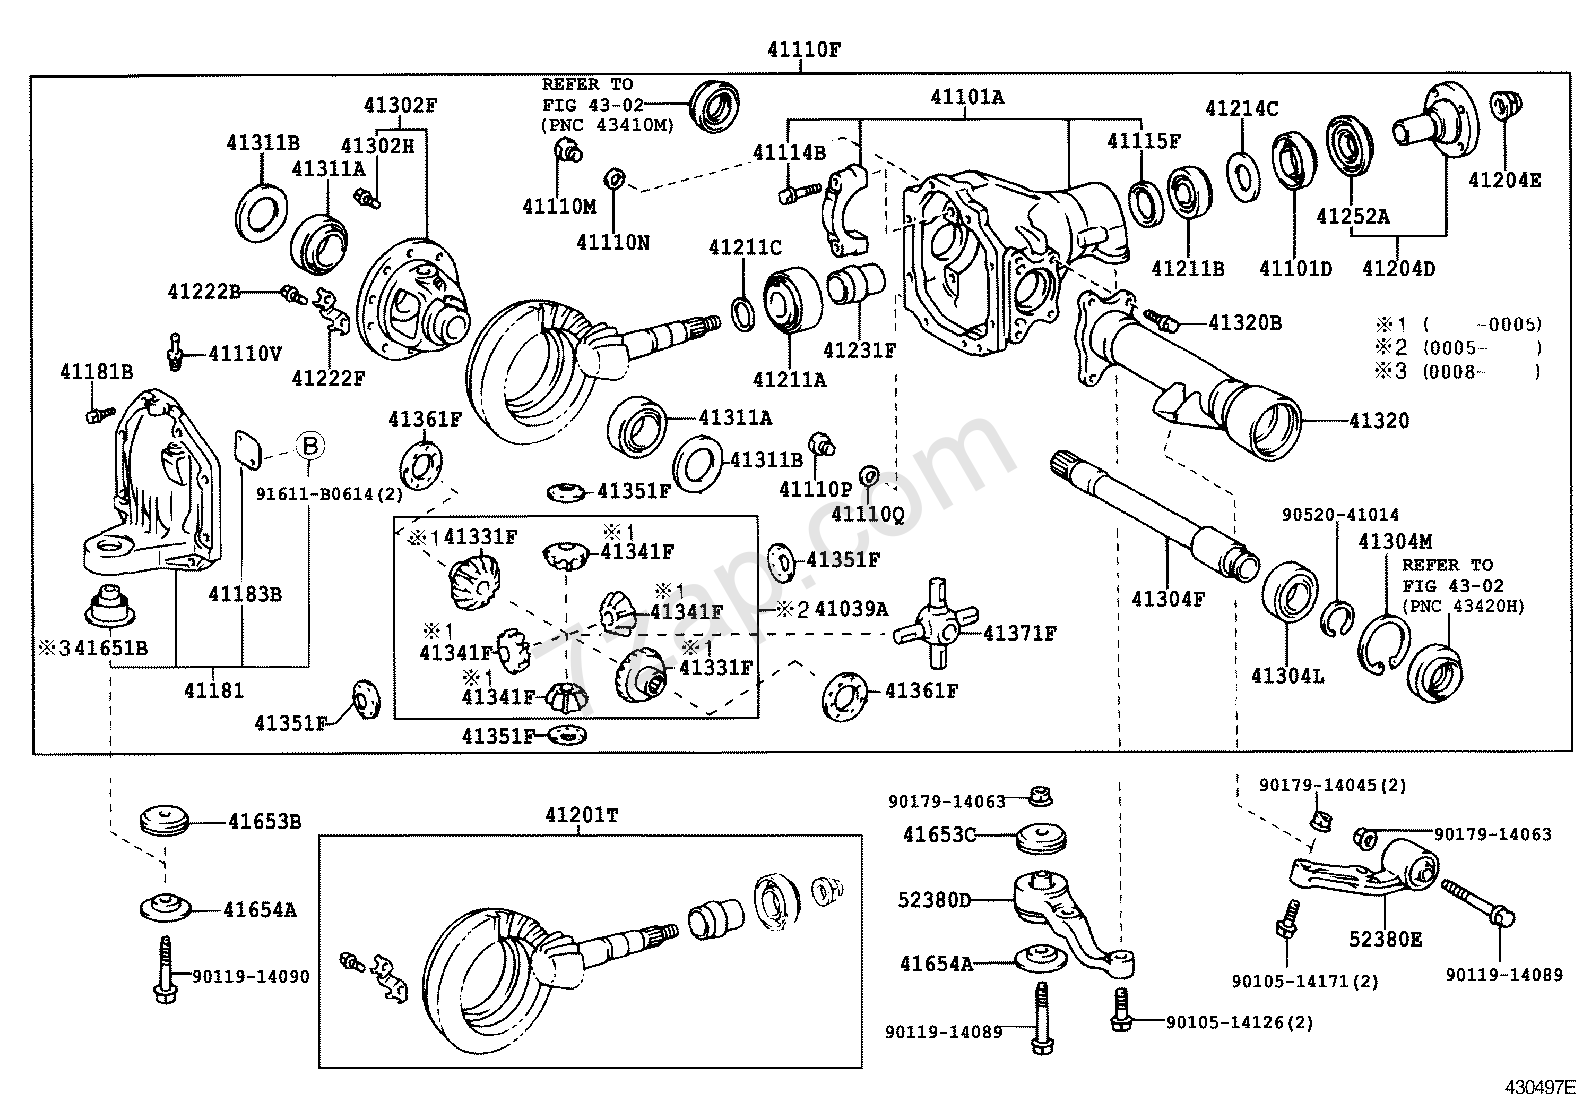 front axle housing  u0026 differential  illust no  1 of 2 9908